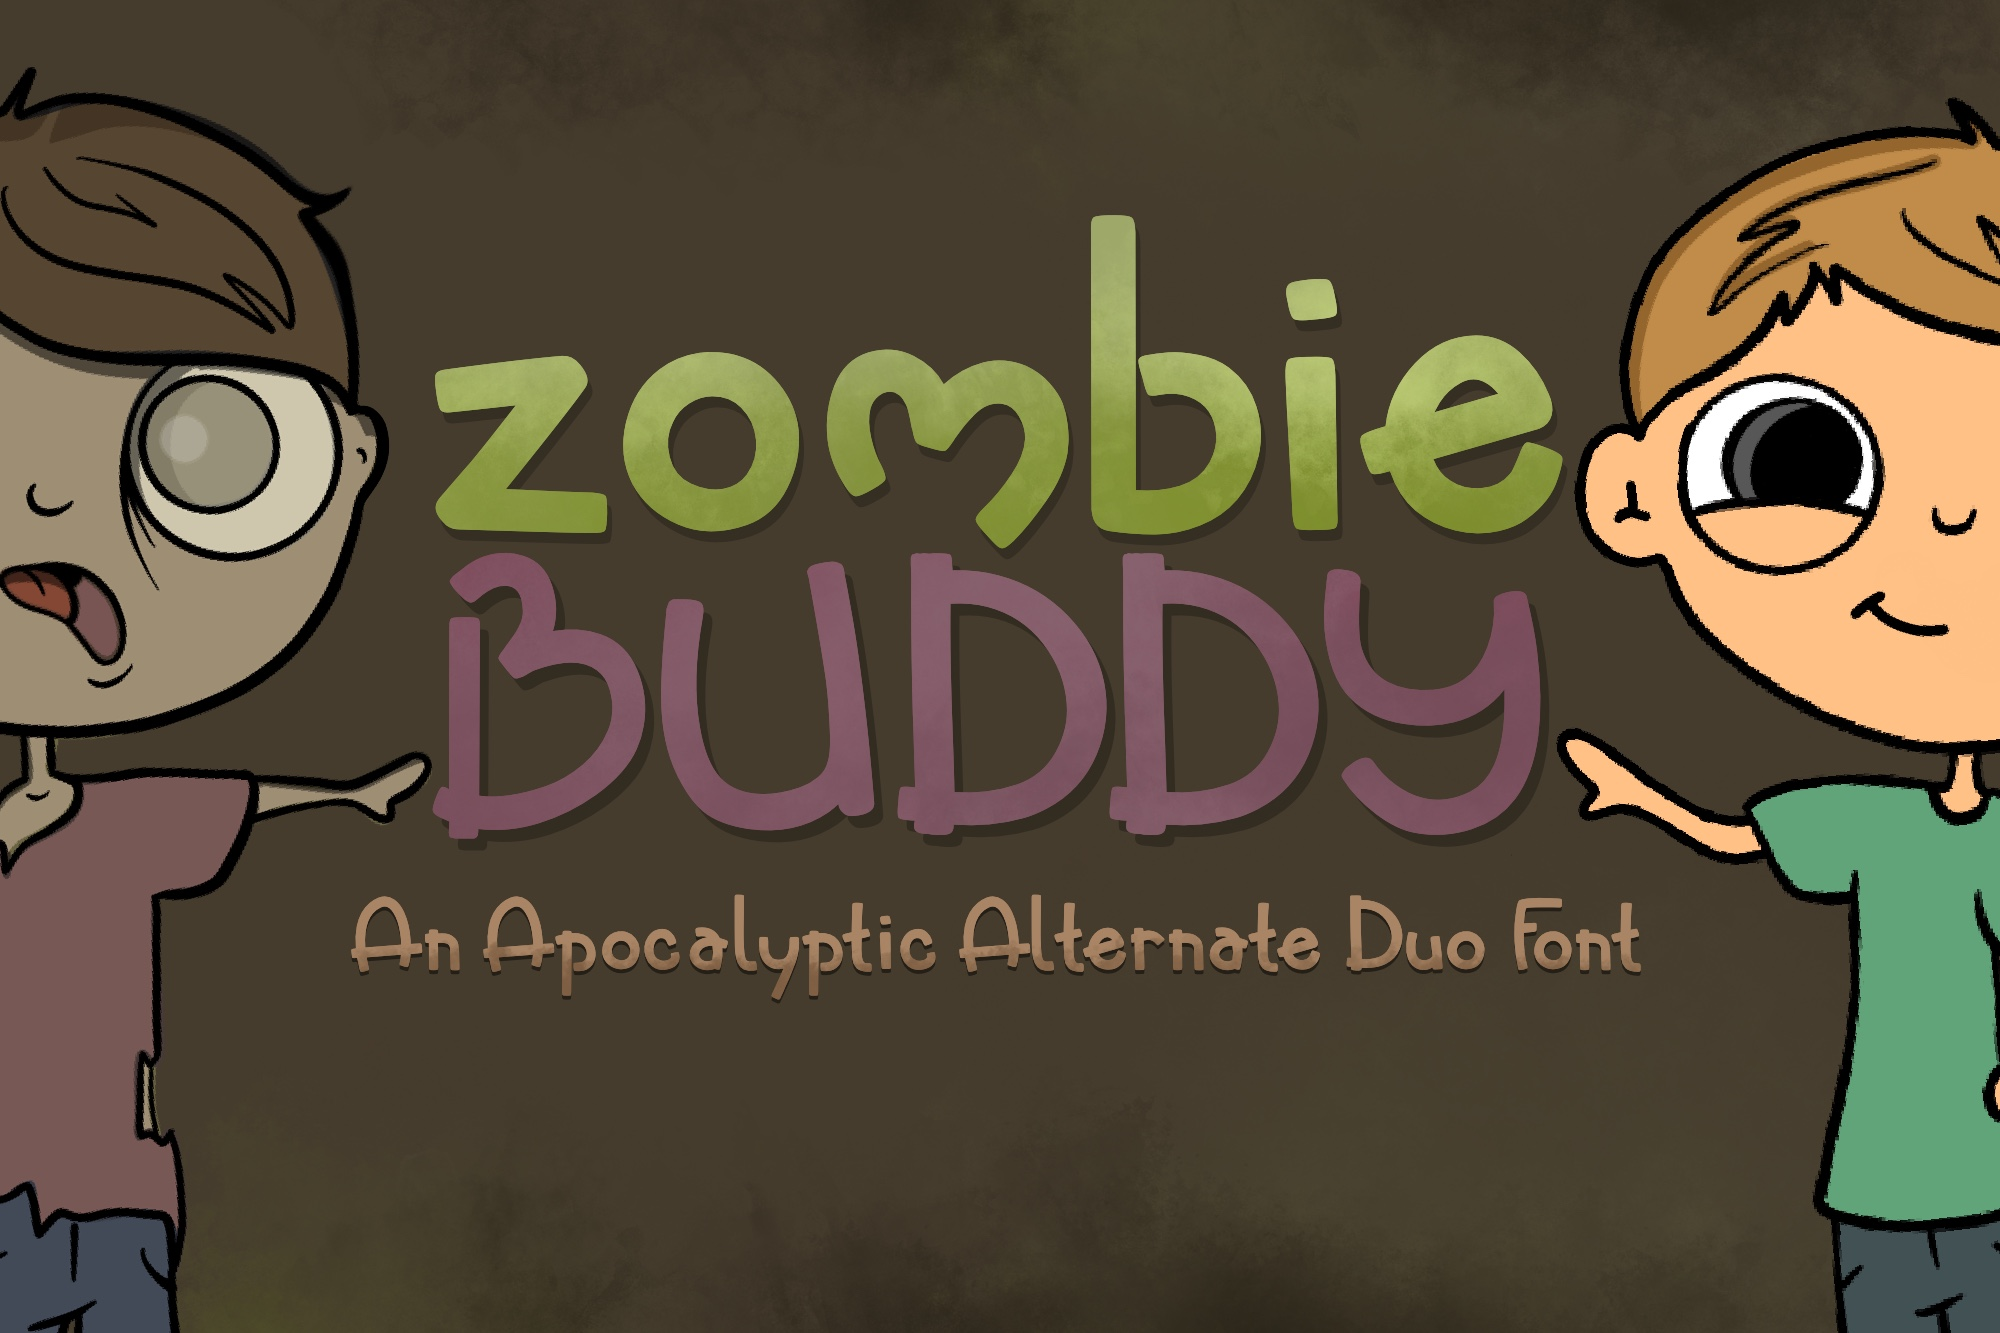 Zombie Buddy| An Apocalyptic Alternate Duo Font example image 1